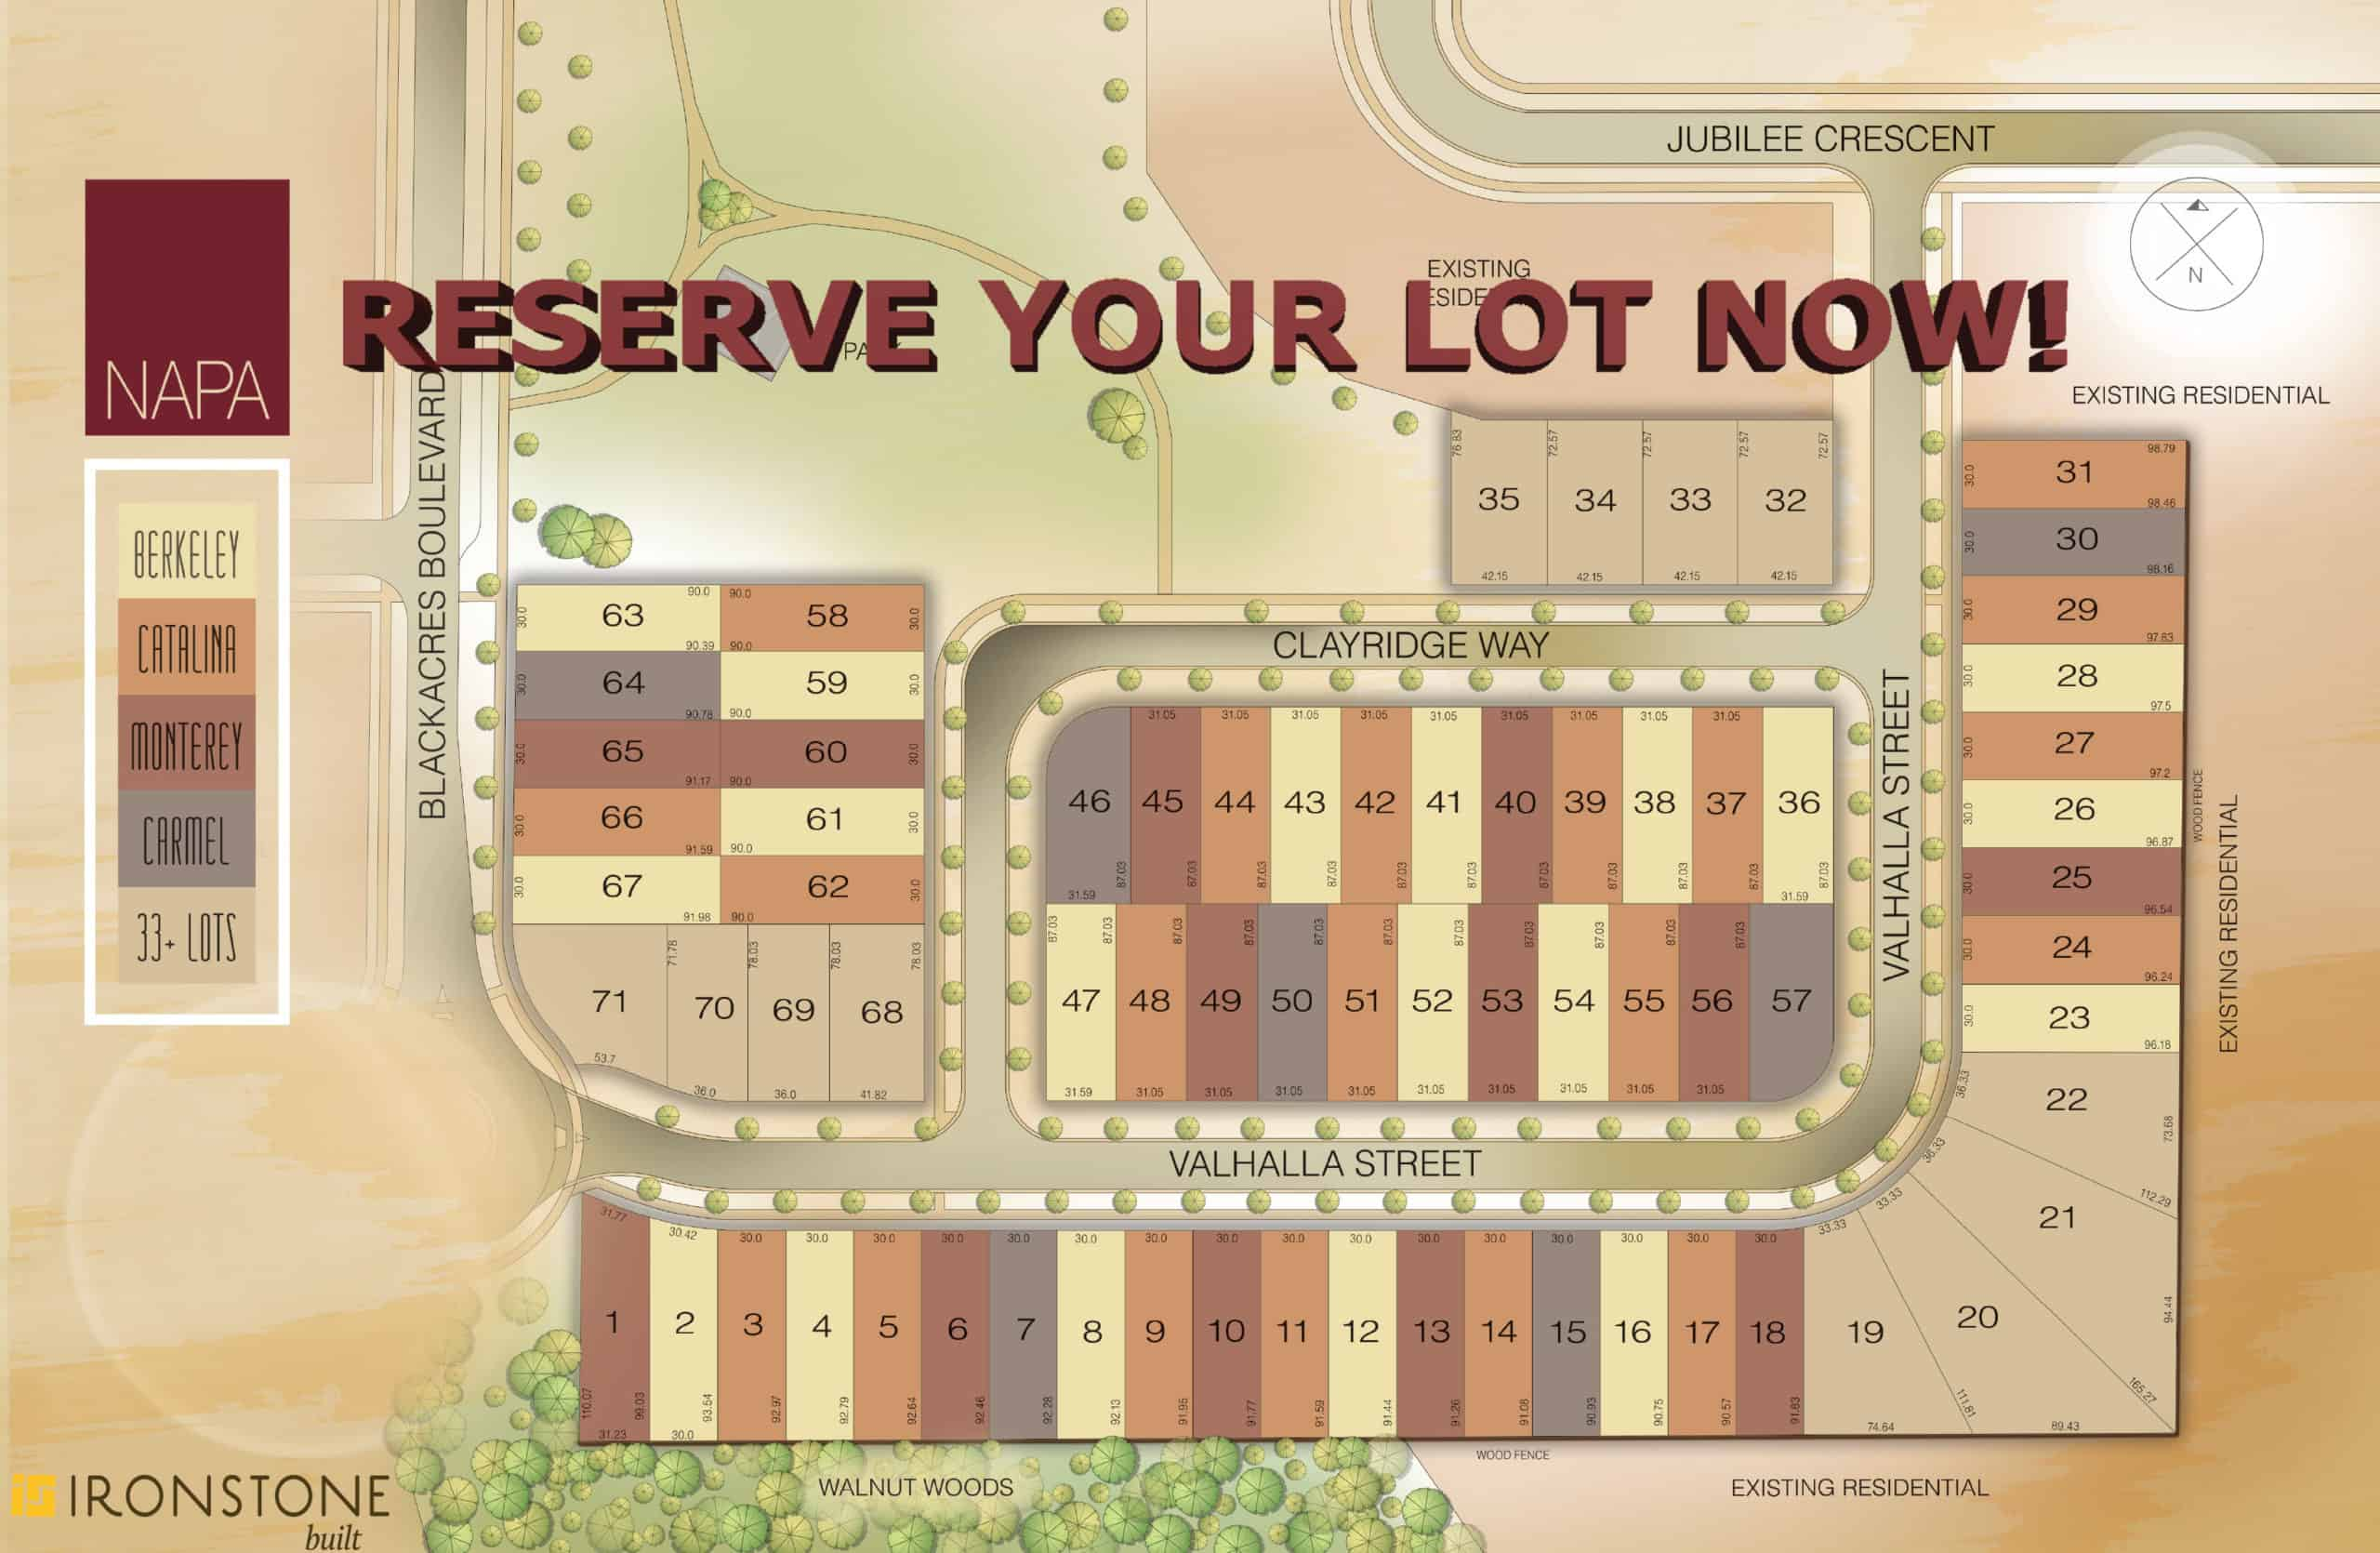 NAPA Community Site Plan saying reserve your lot now!